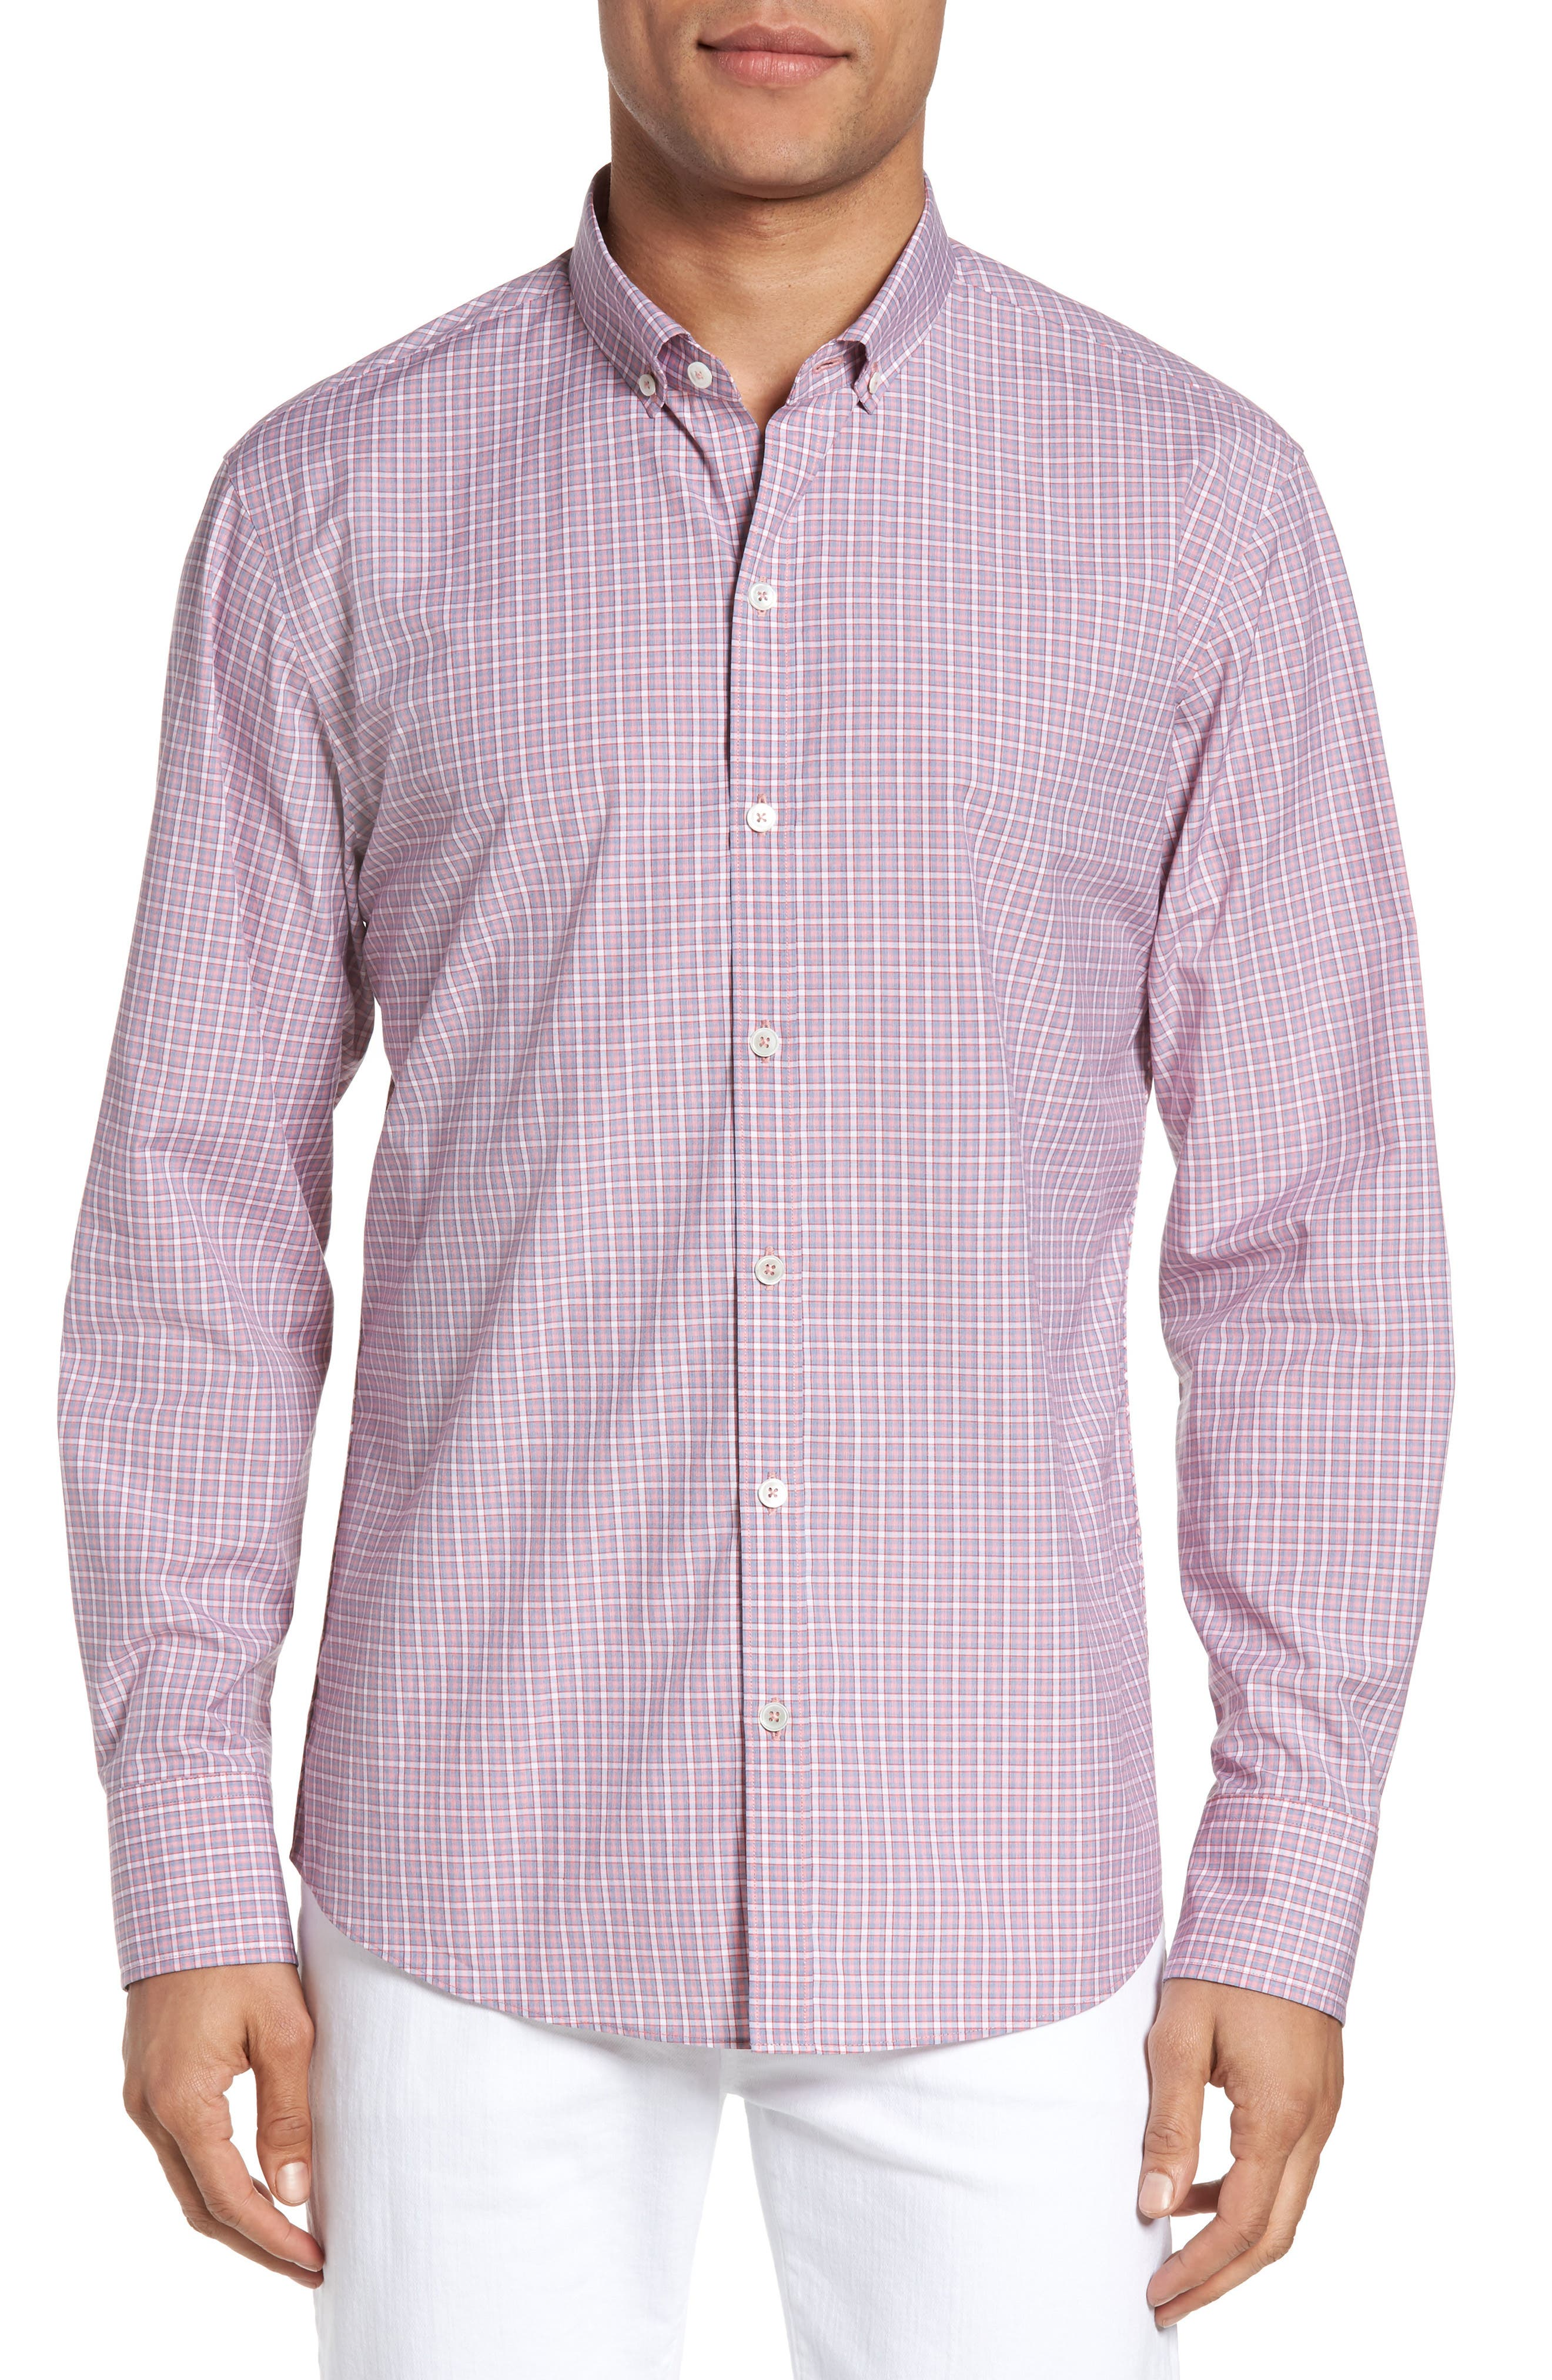 Alternate Image 1 Selected - Zachary Prell Balestier Trim Fit Plaid Sport Shirt